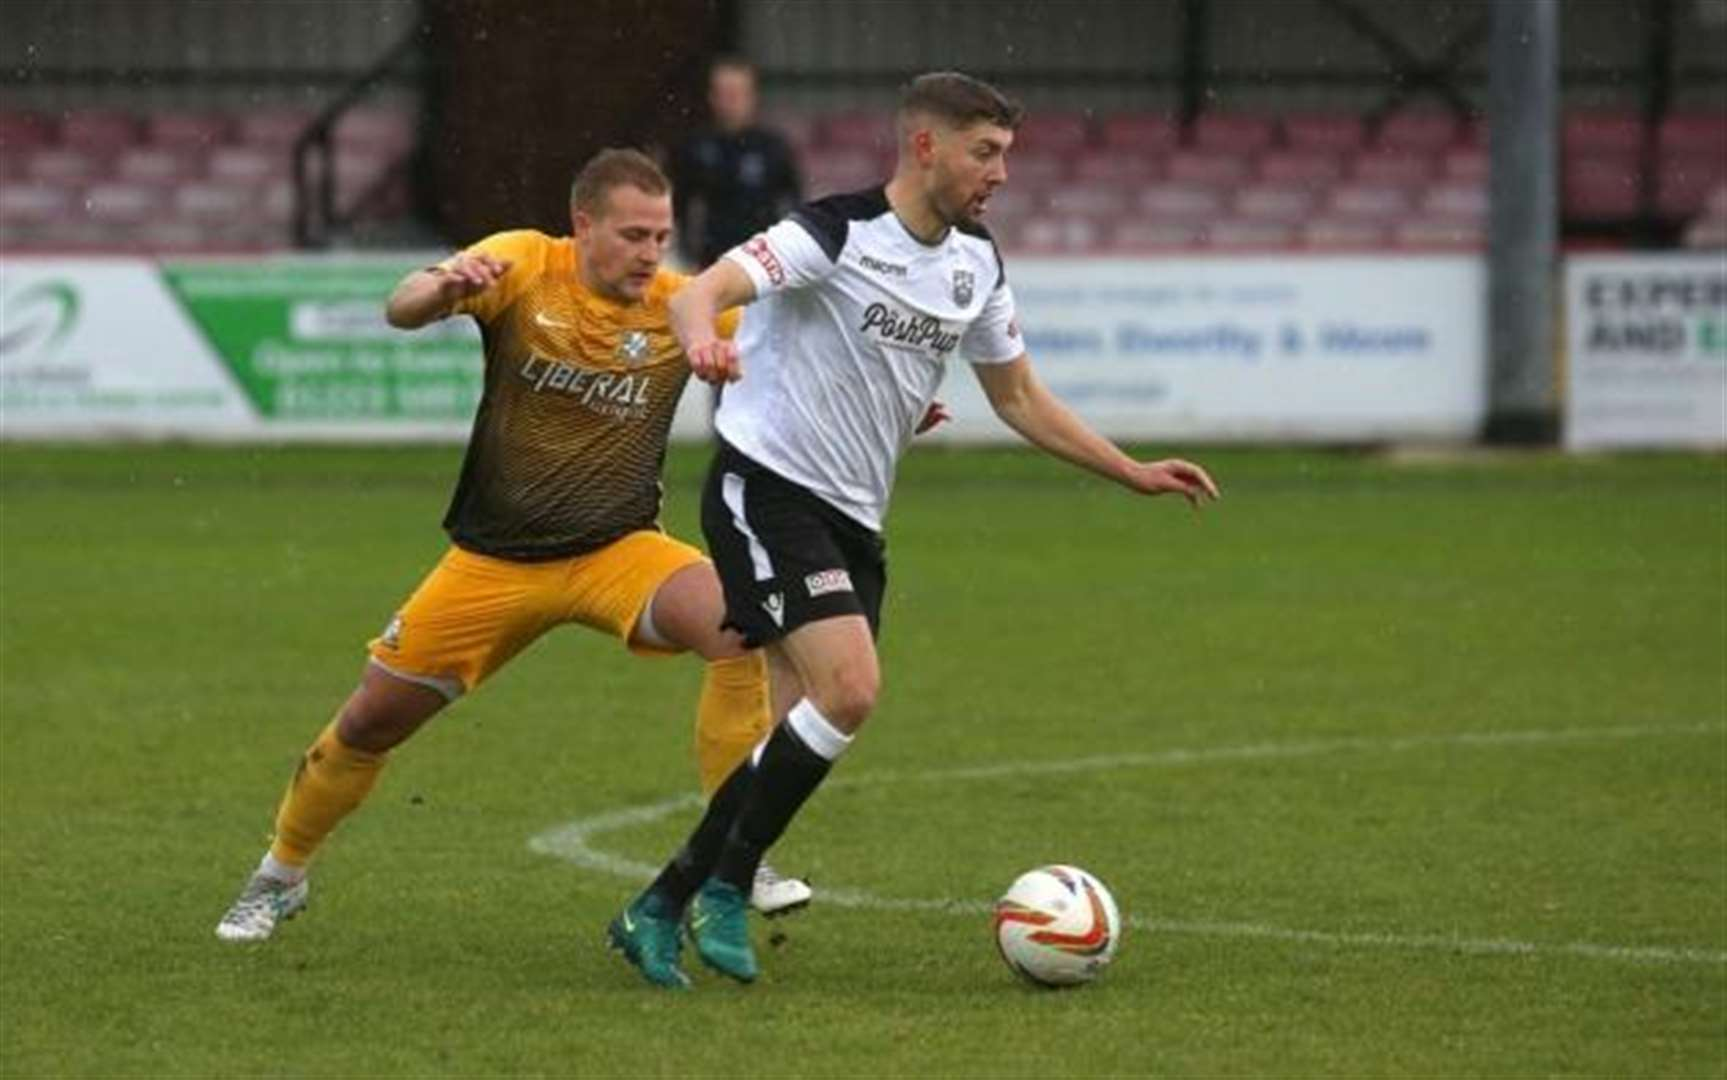 Day to forget for Cambridge City